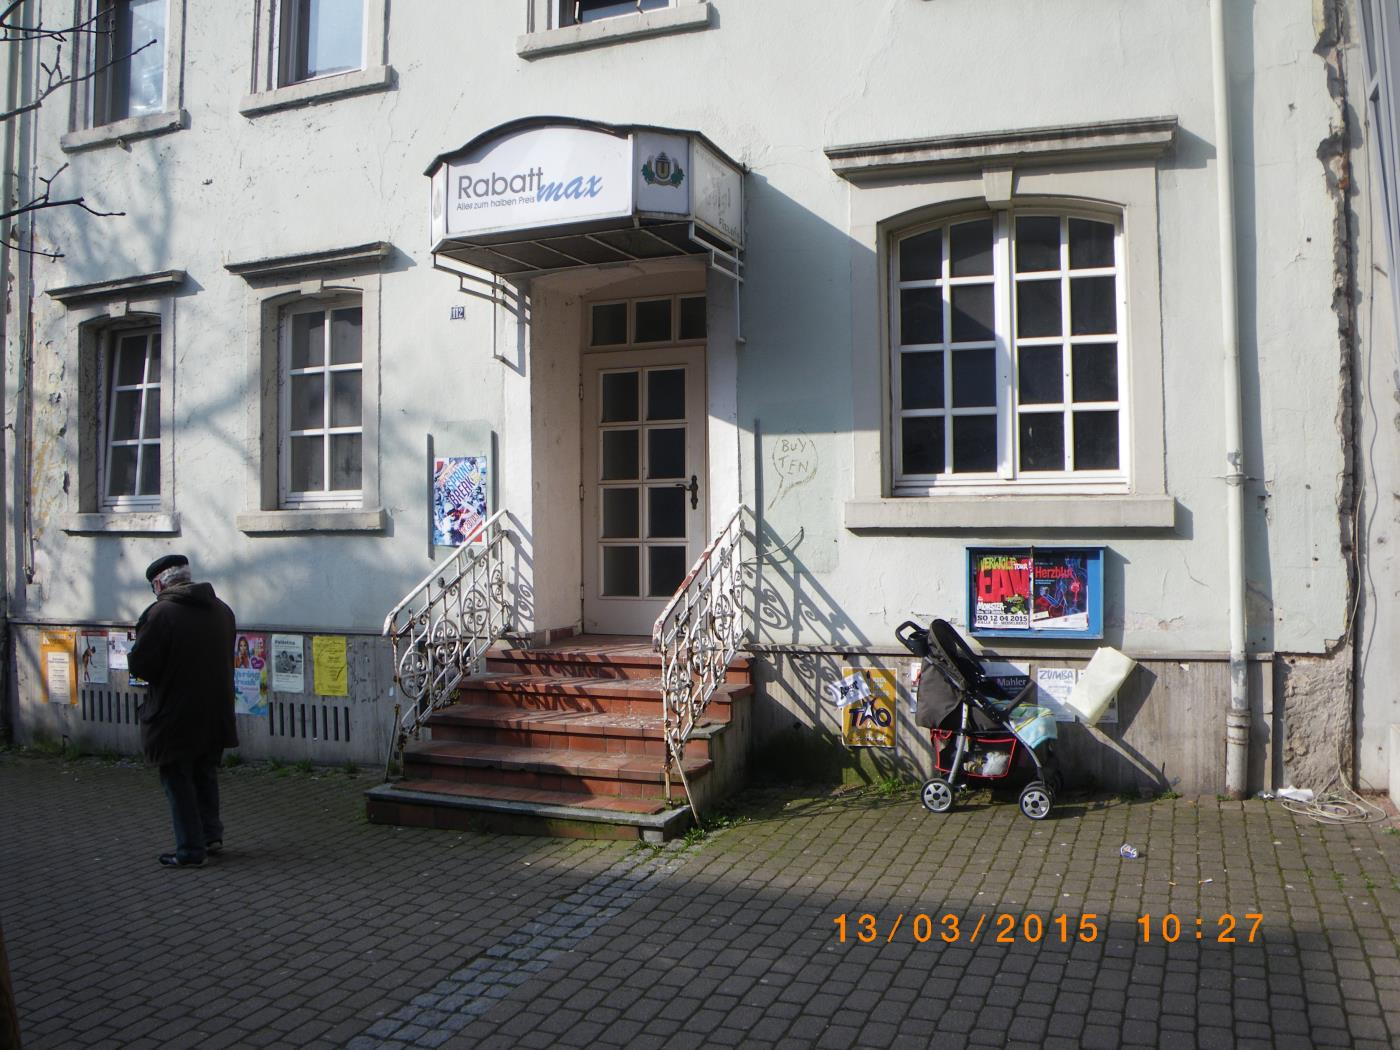 Wiesloch: Jehovah's Witnesses yield to truth